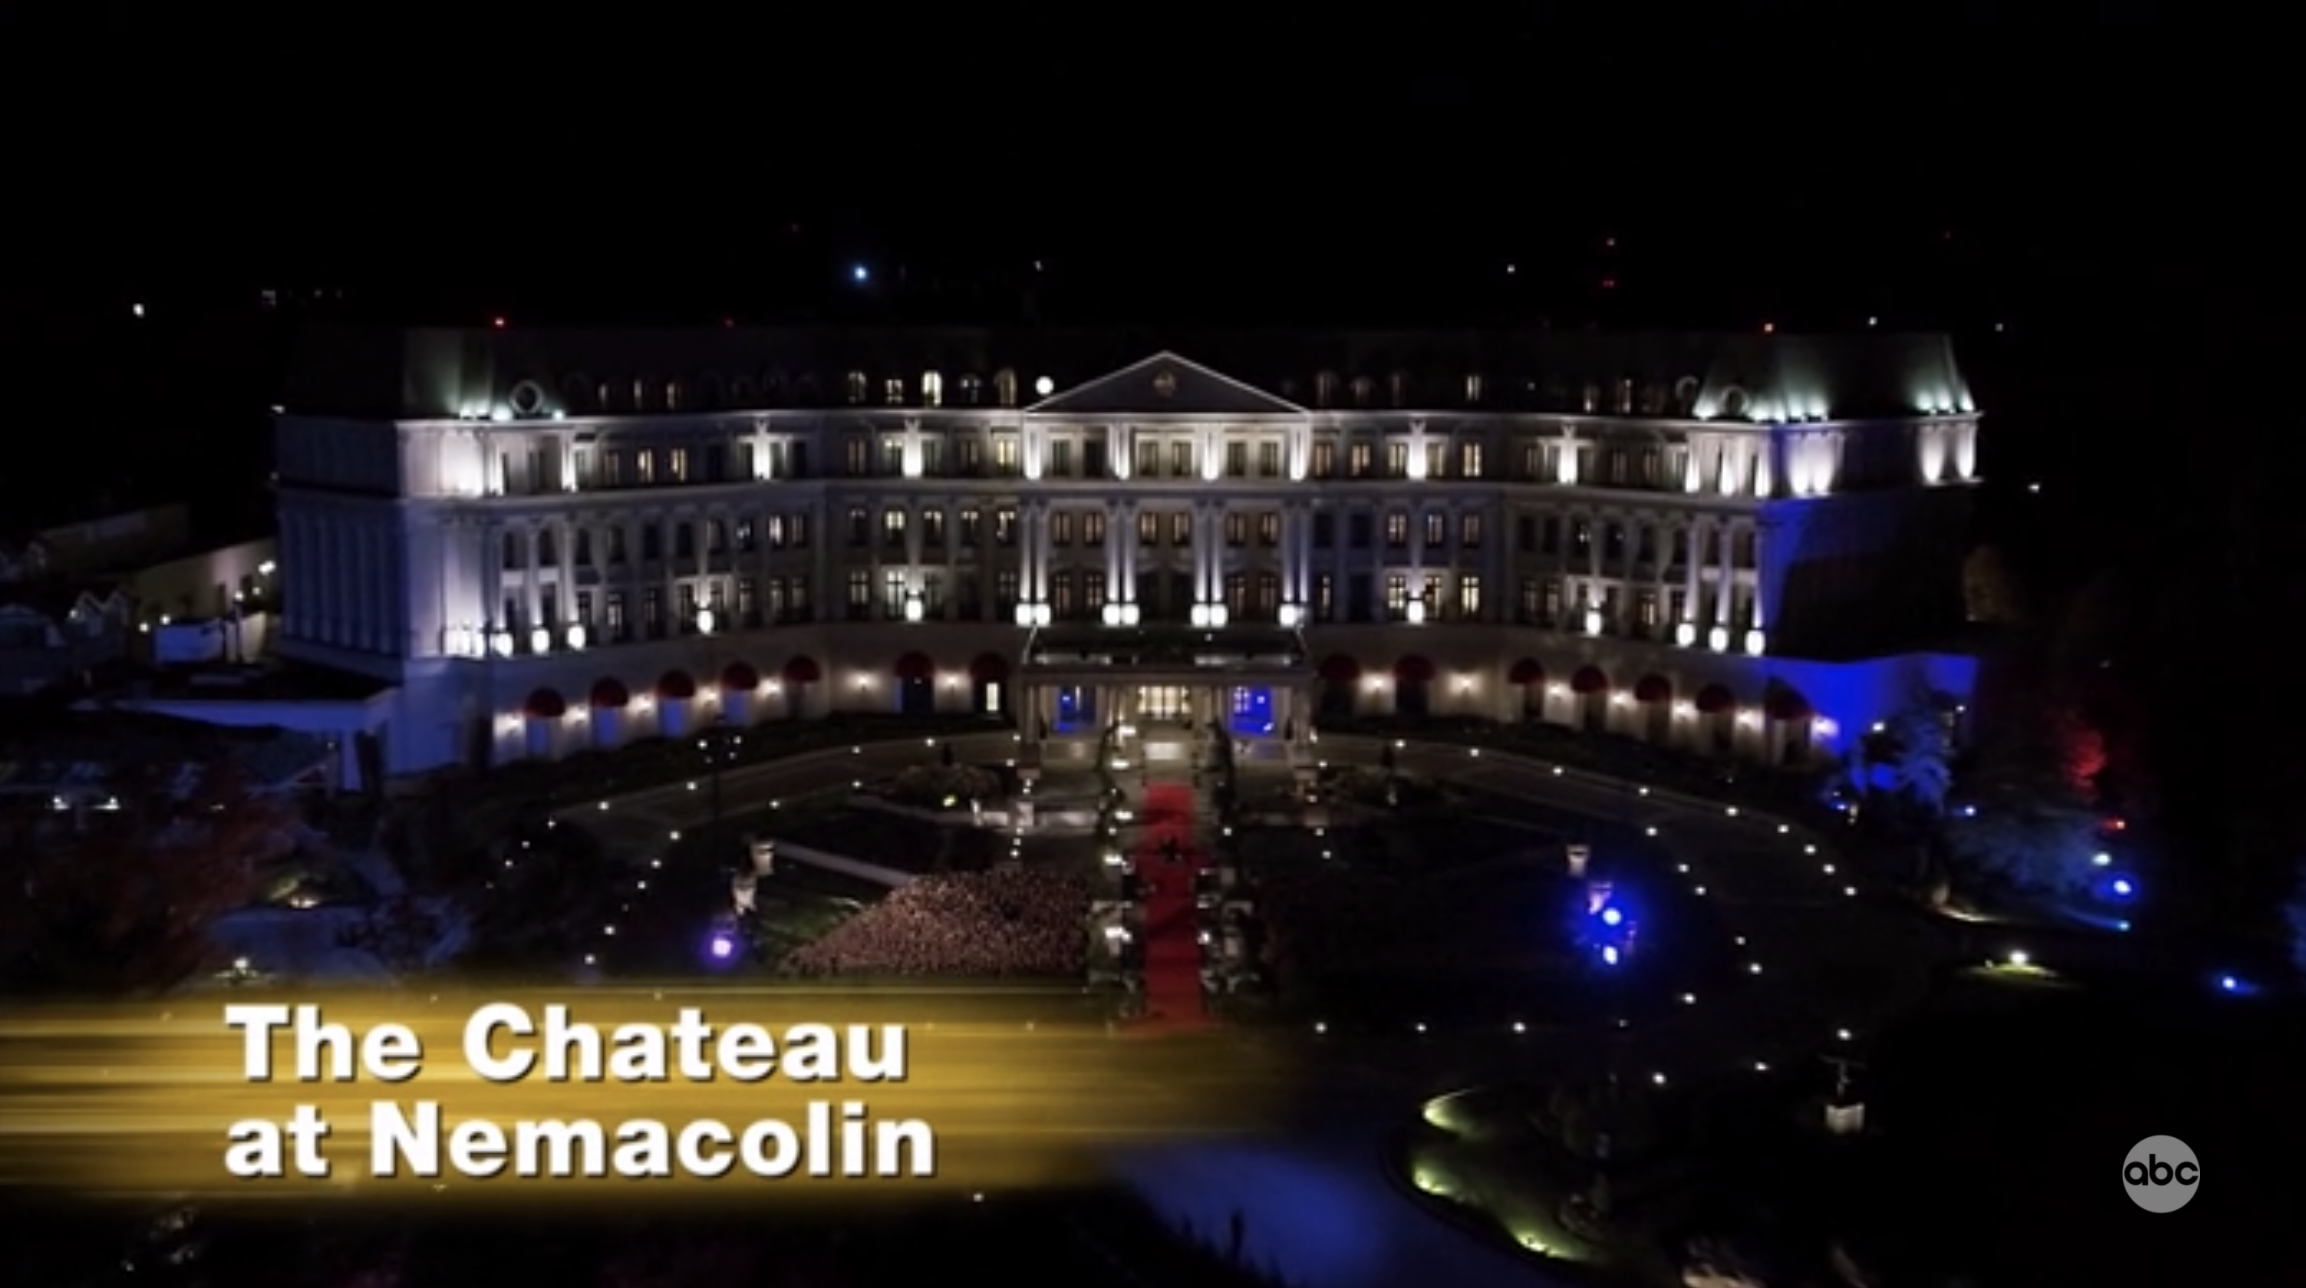 The Chateau at Nemacolin